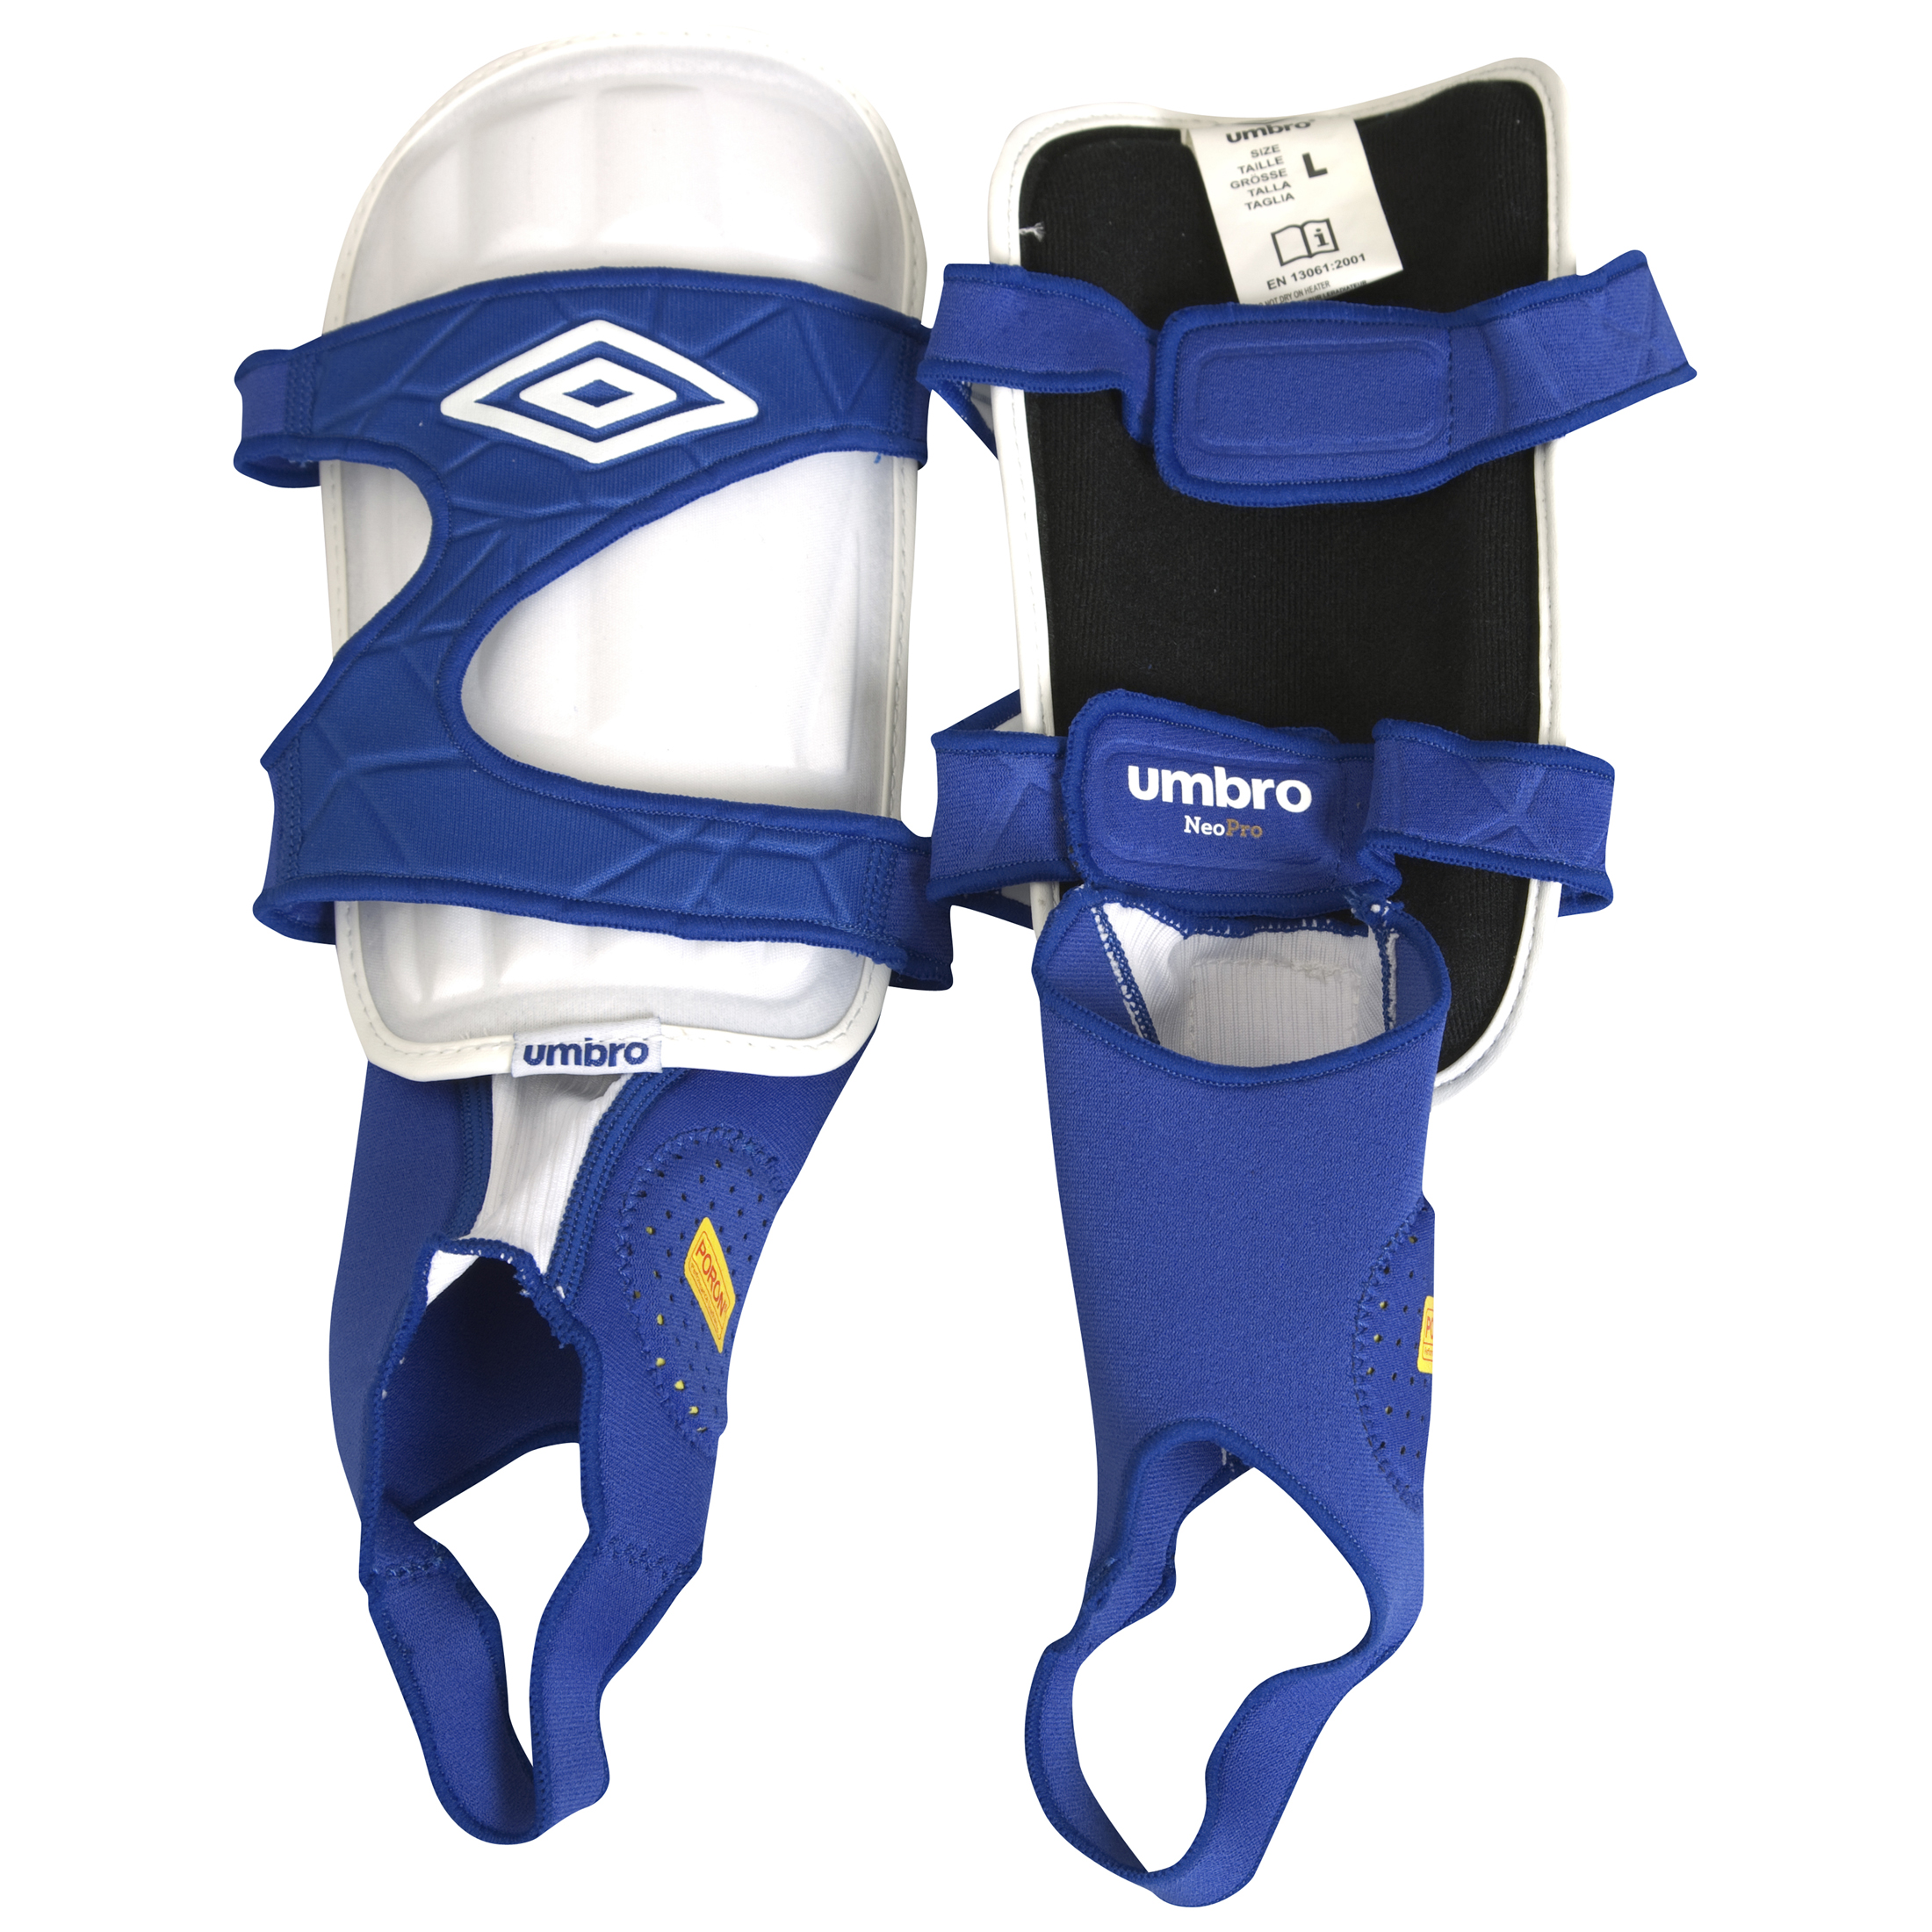 Umbro Pro Shin Pads - White/Blue